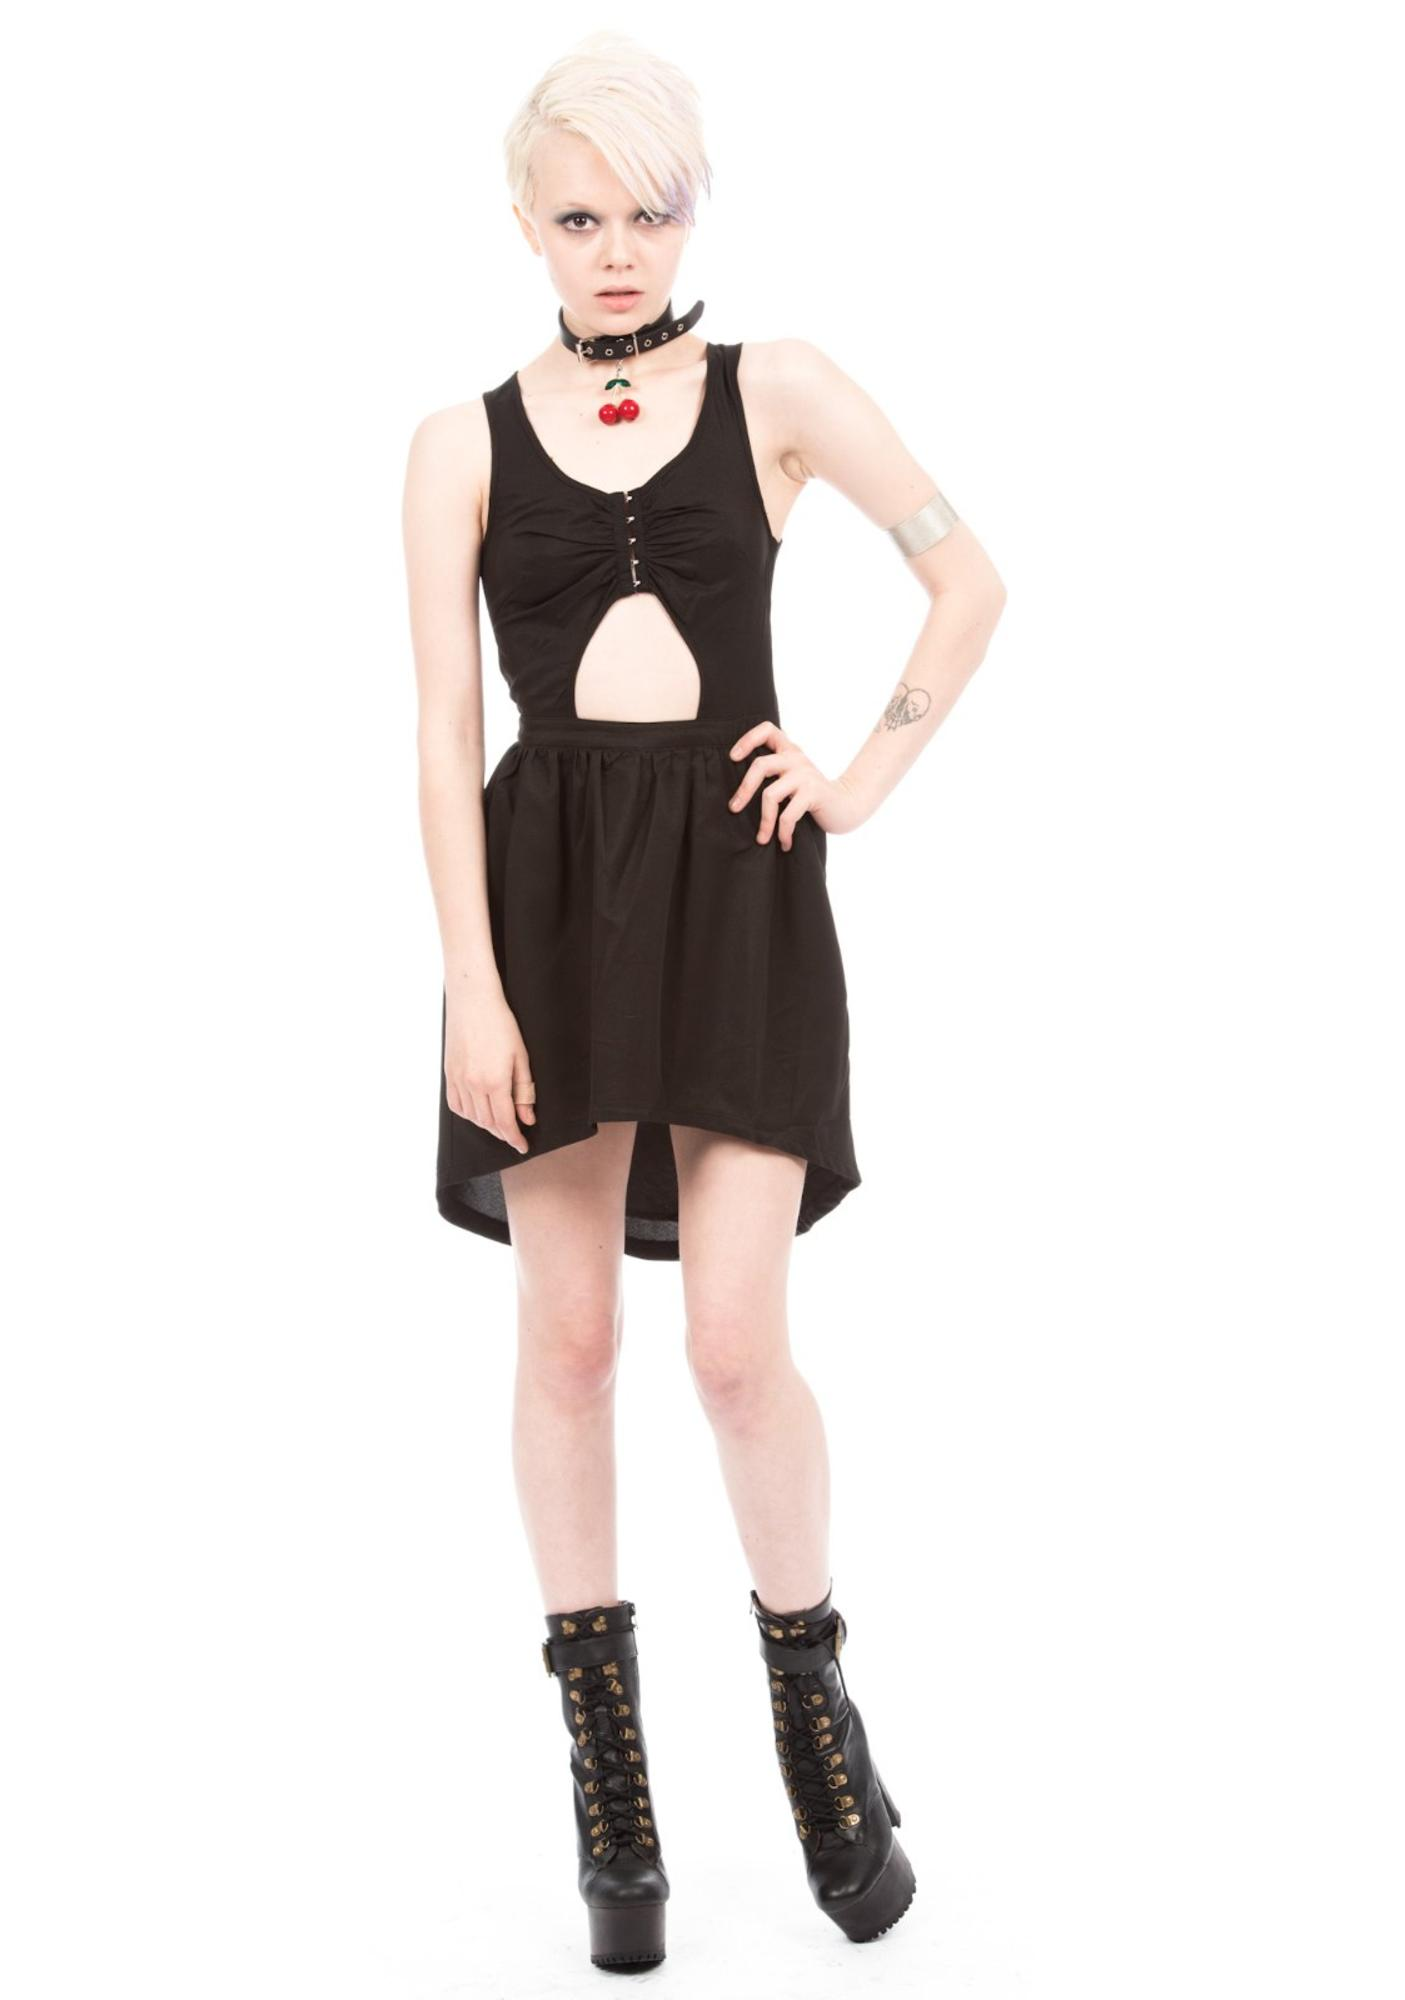 HLZBLZ X Belle Of The Brawl Outsiders Peek-A-Boo Cut Out Dress